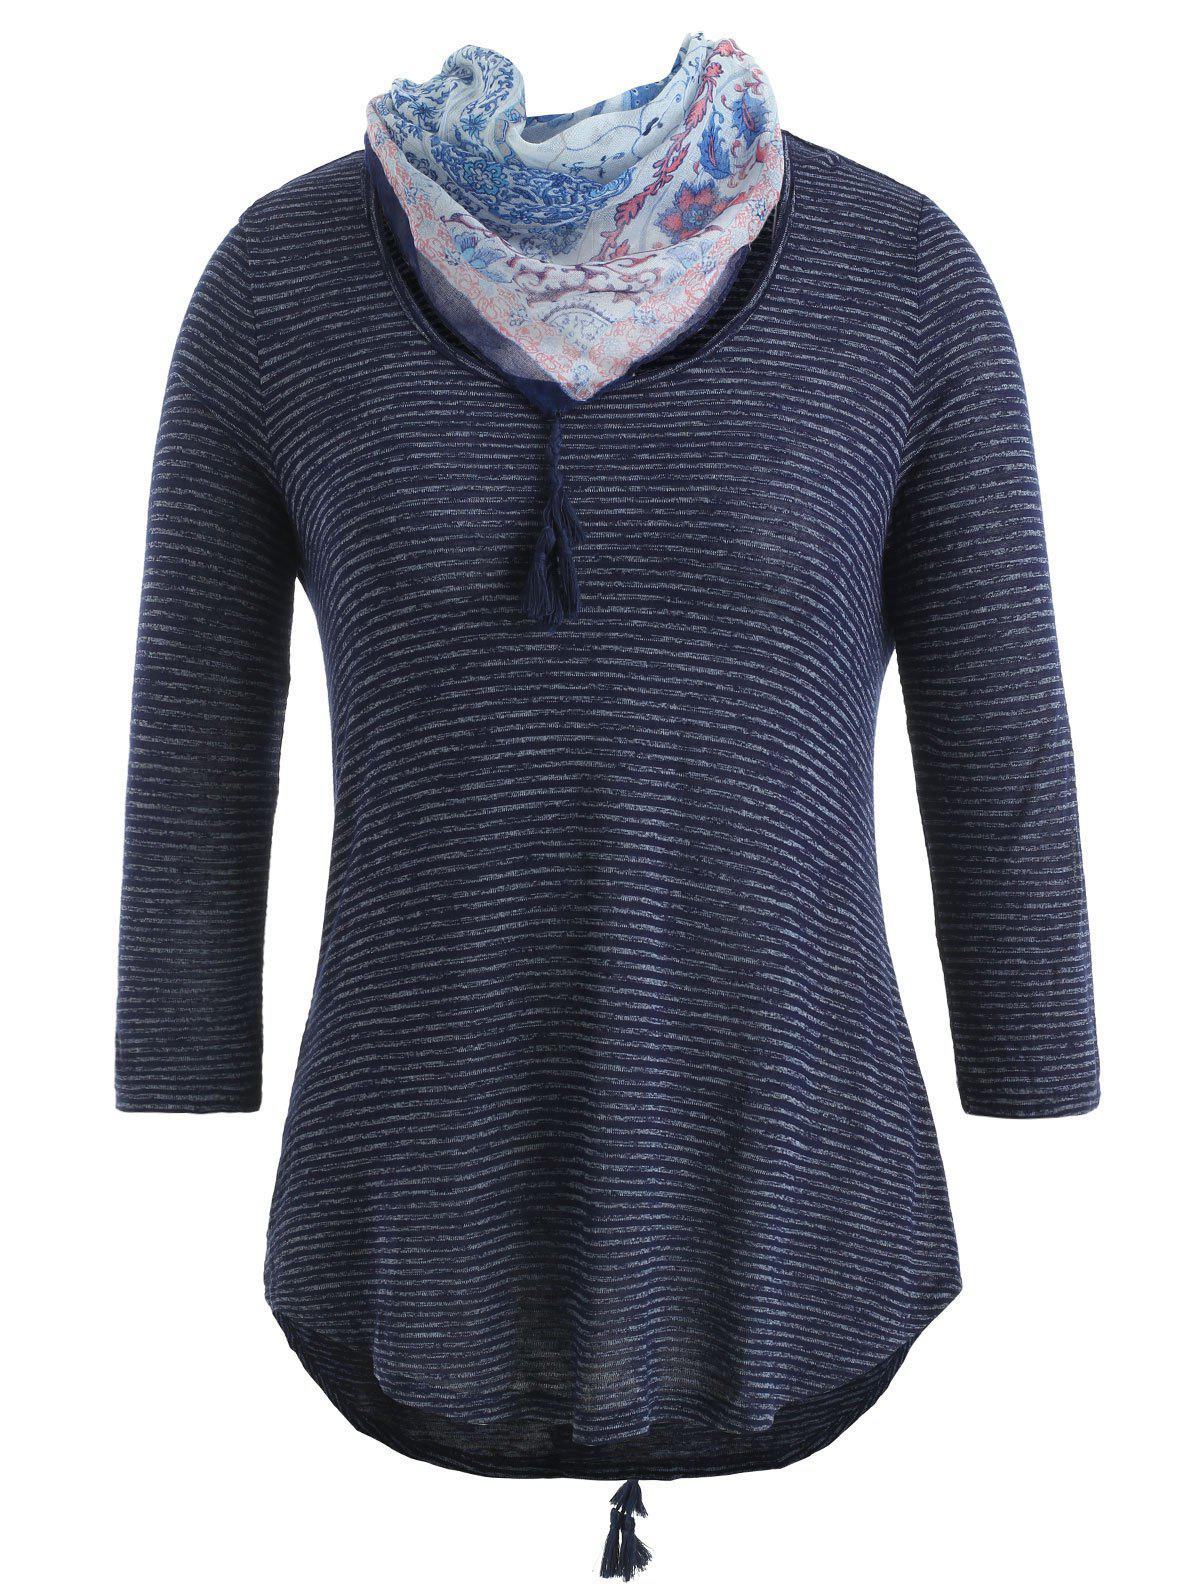 Store Striped Print T-shirt with Floral Scarf